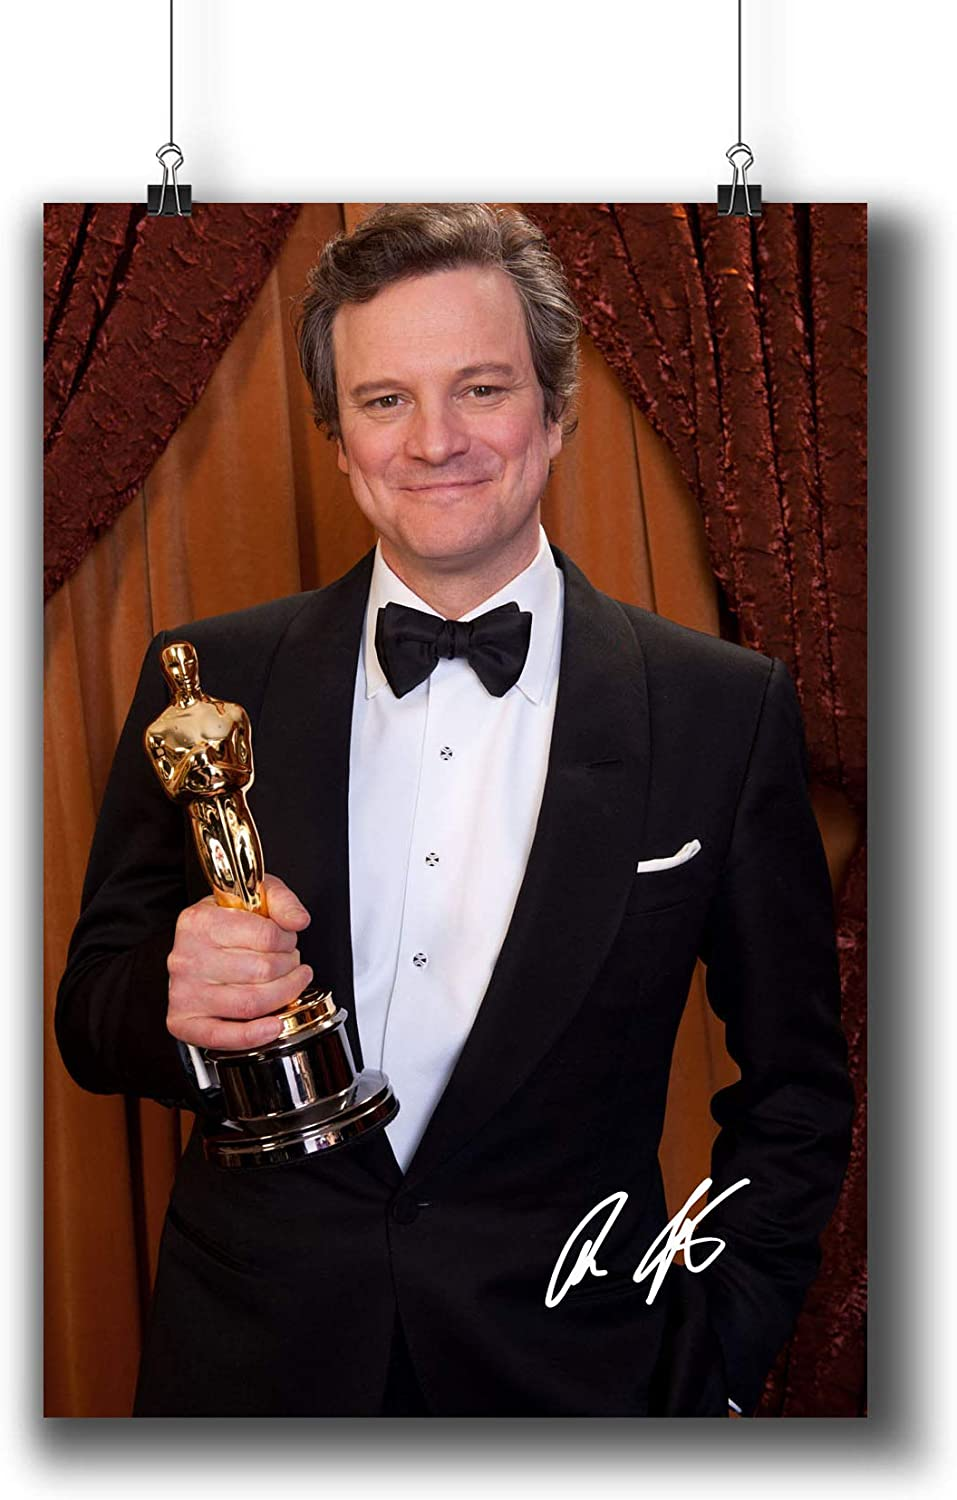 Colin Firth Actor Movie Photo Poster Prints 006-010 Reprint Signed,Wall Art Decor for Dorm Bedroom Living Room (A4|8x12inch|21x29cm)